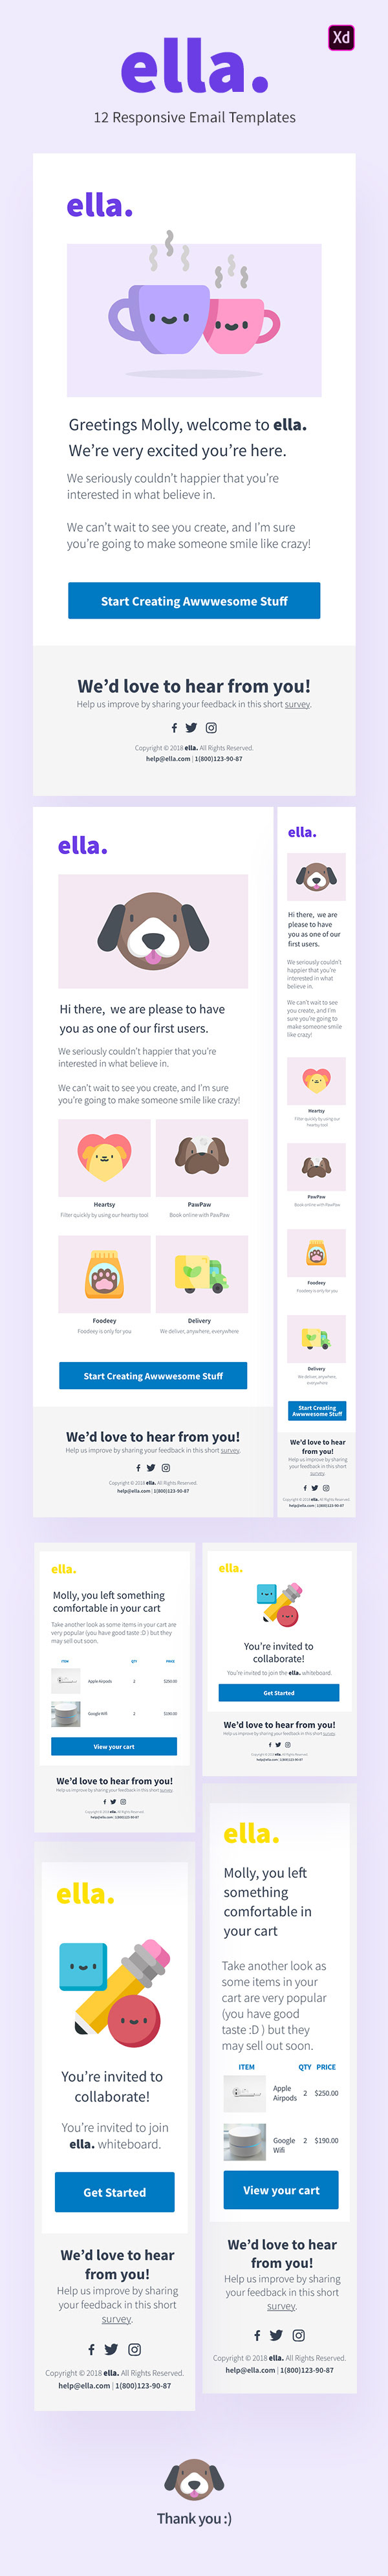 Ella 12 Responsive Email Templates For Adobe Xd On Behance